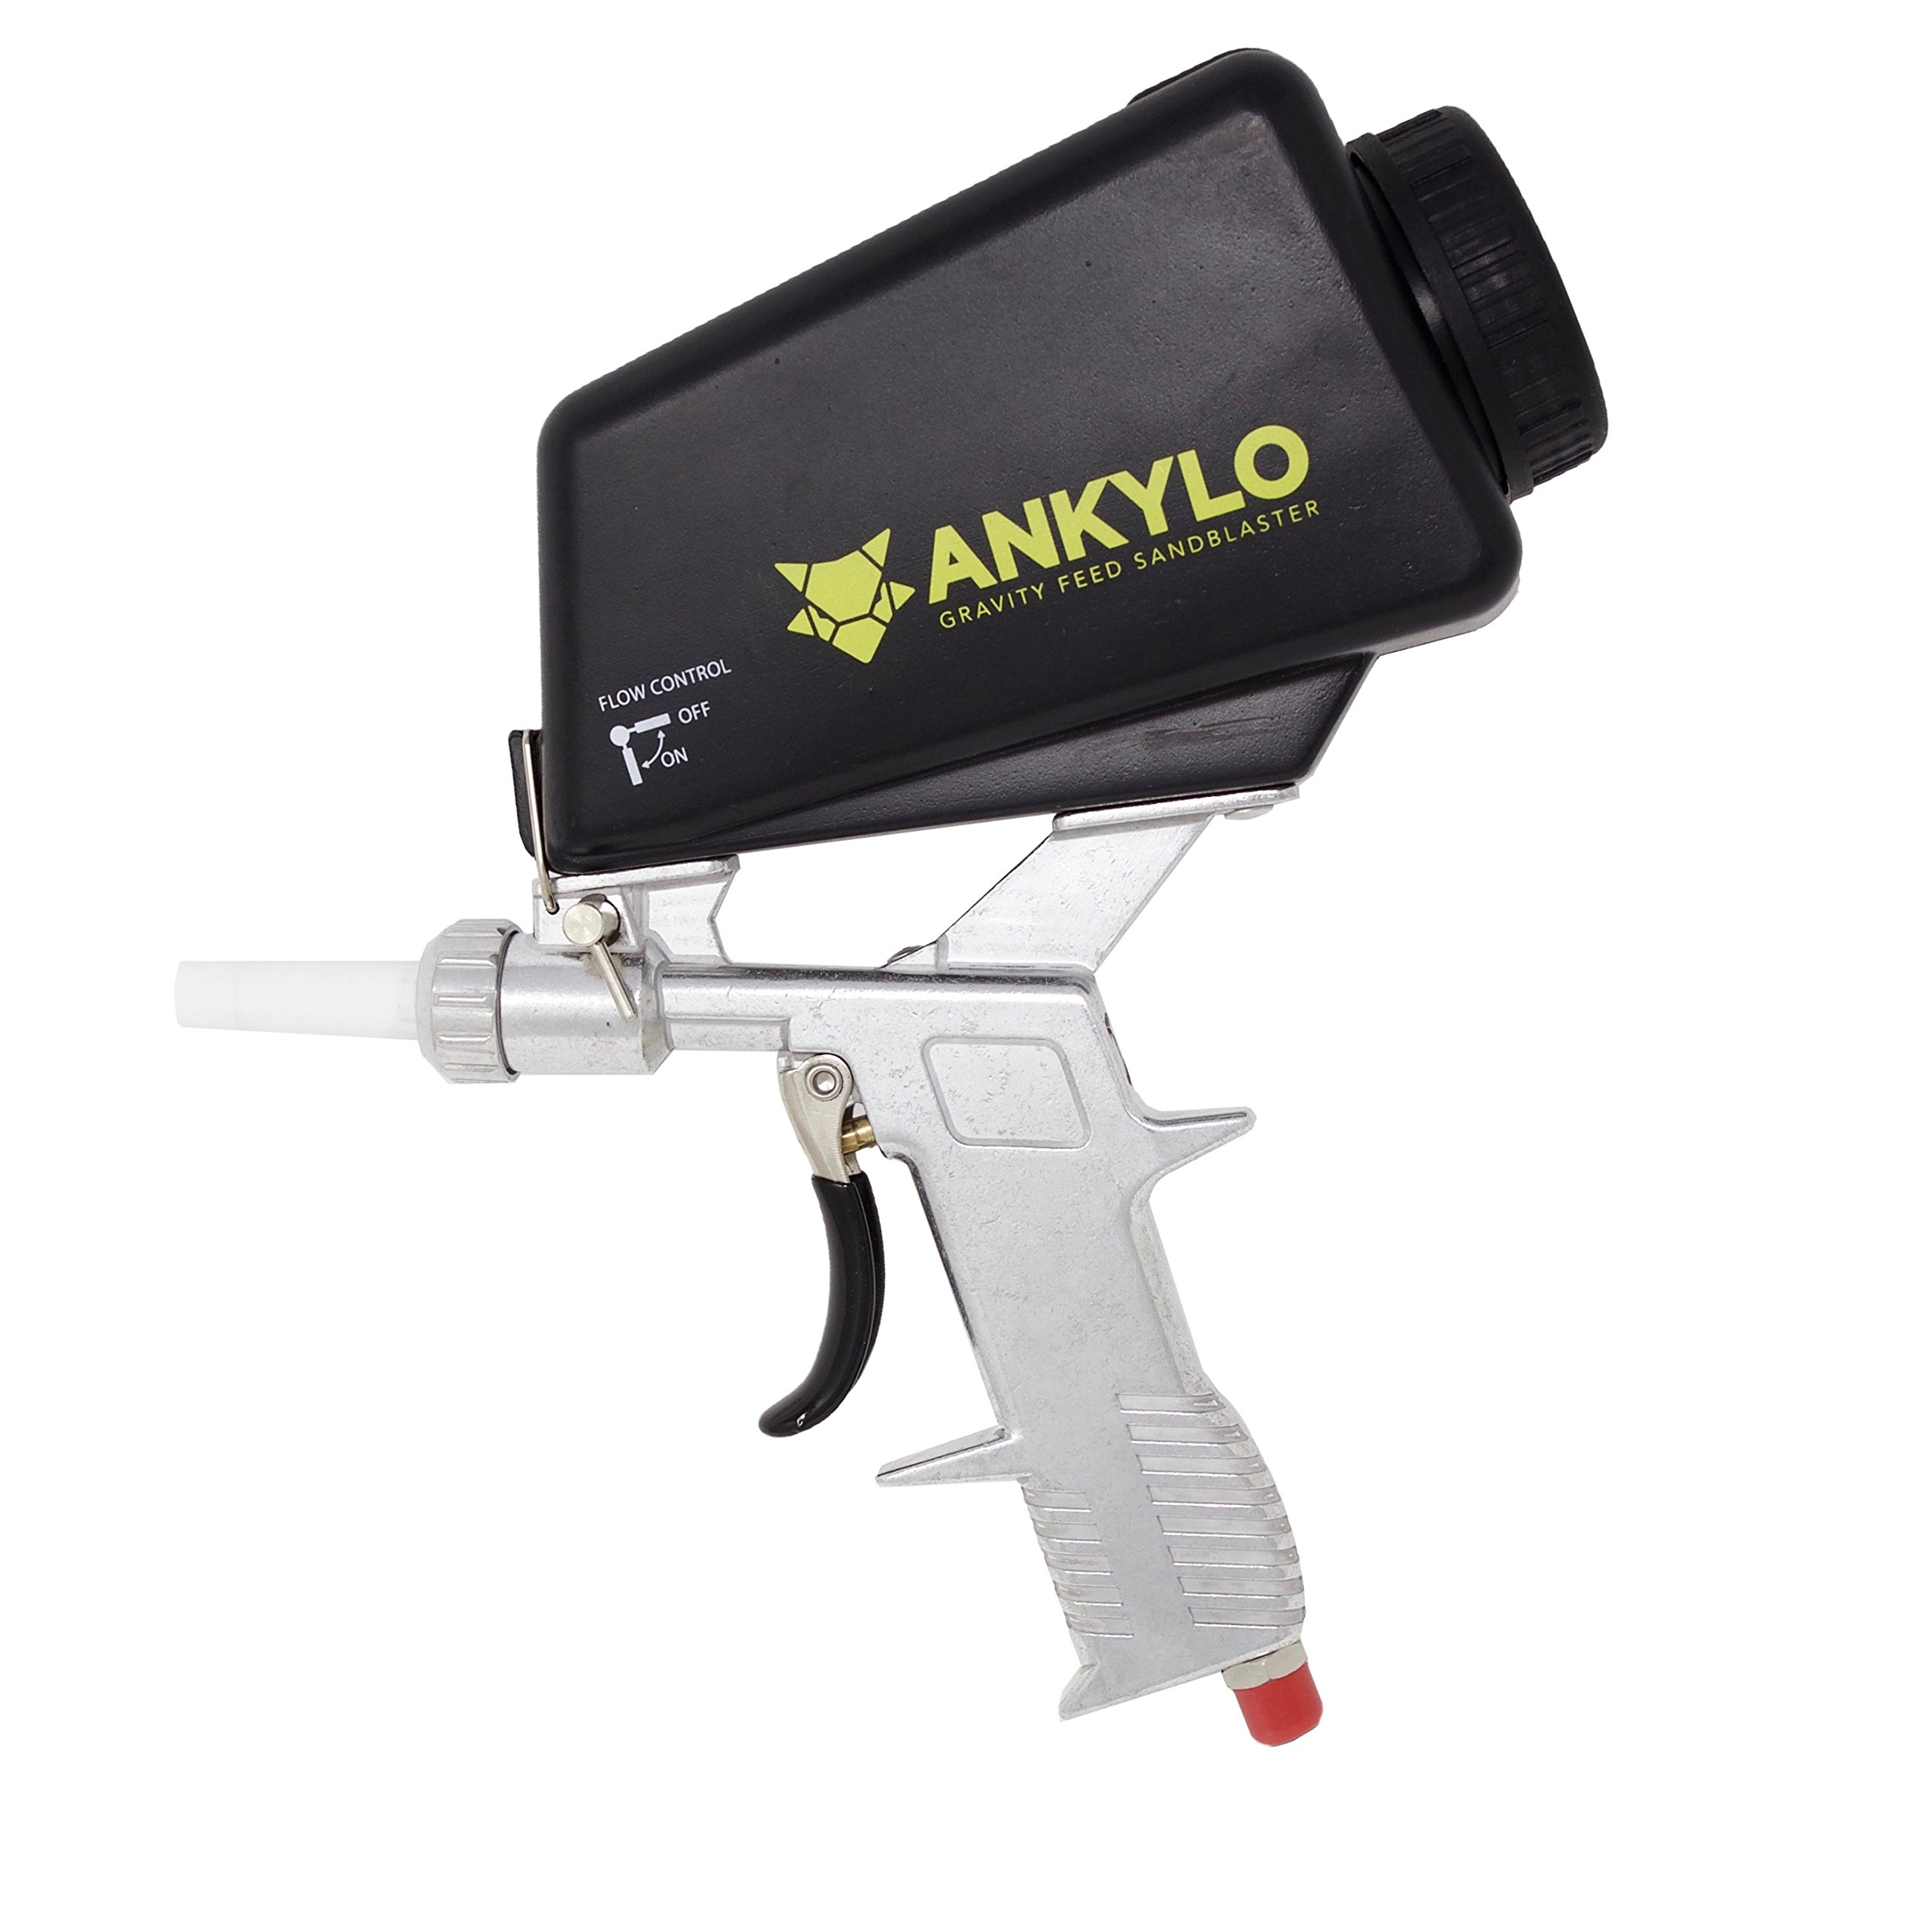 Gravity Sandblaster Gun - Durable Metal - Handheld and Portable with bonus Spot Blasting Kit - Remove Rust & Paint, Clean Tools & Parts, Create Art by ANKYLO Tools (Image #1)